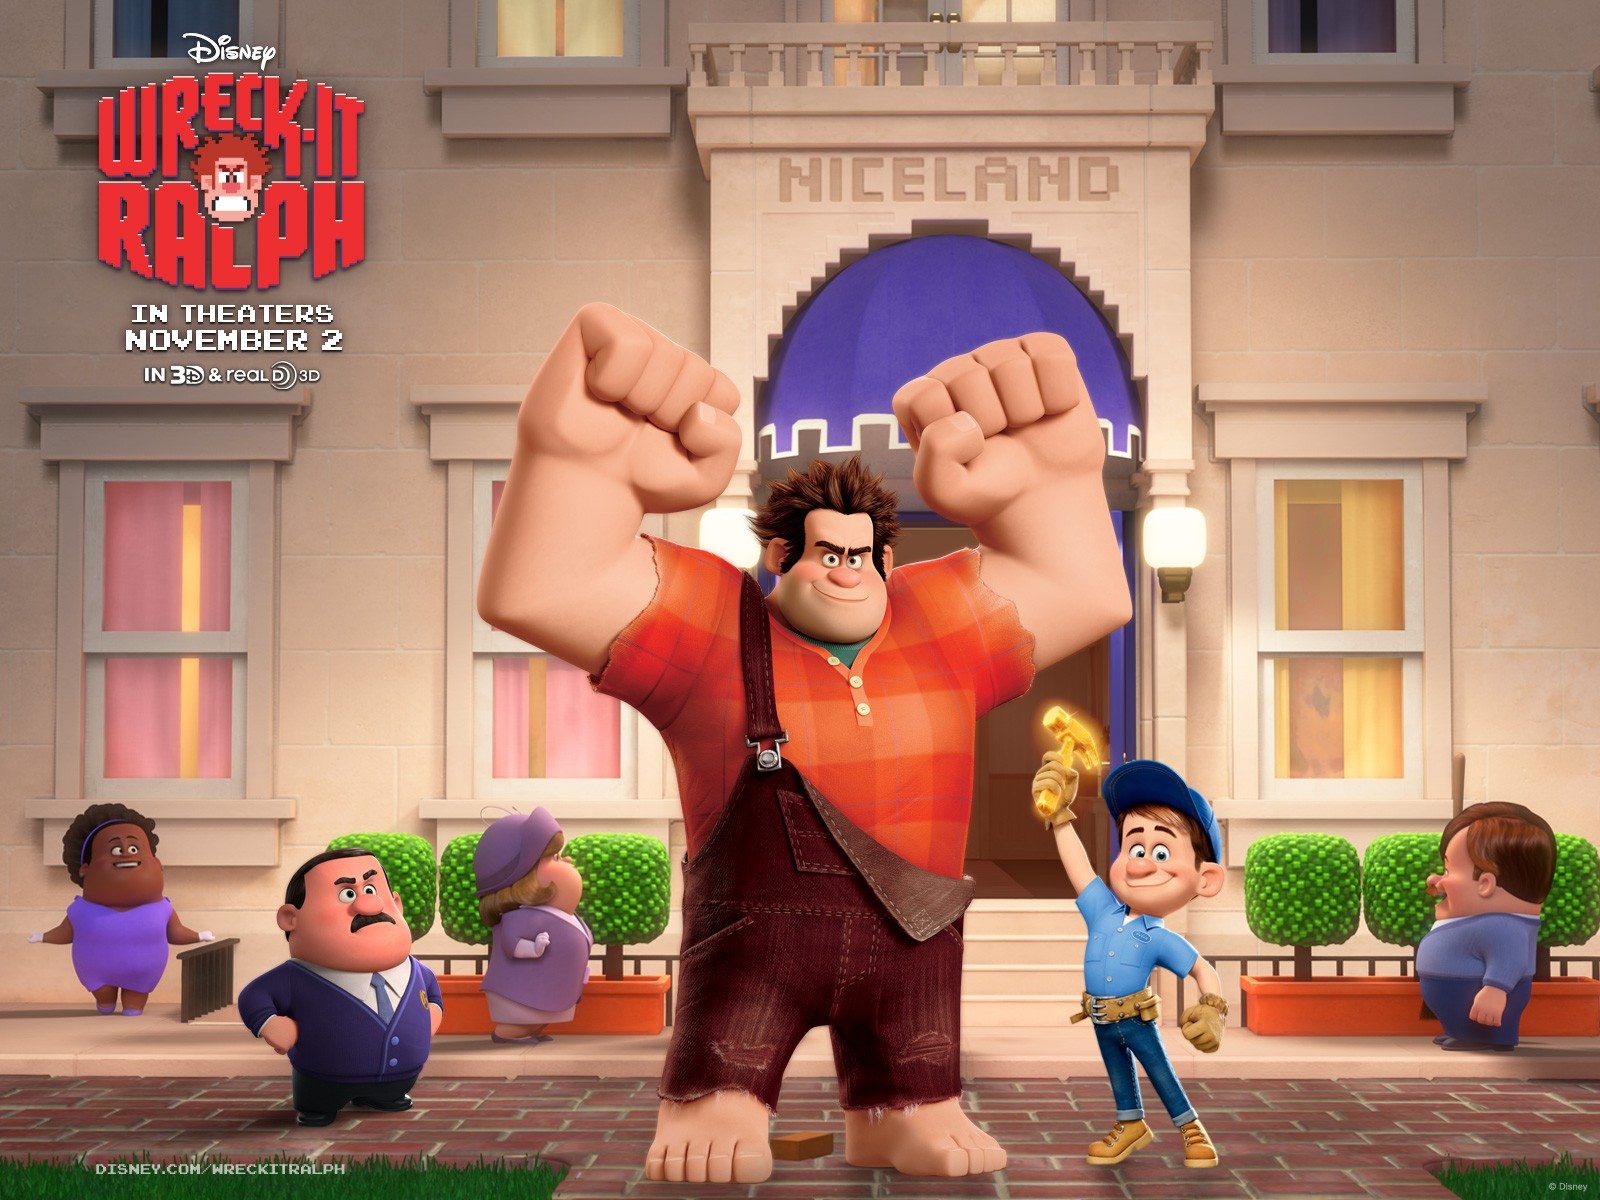 Wreck it ralph interview with producer